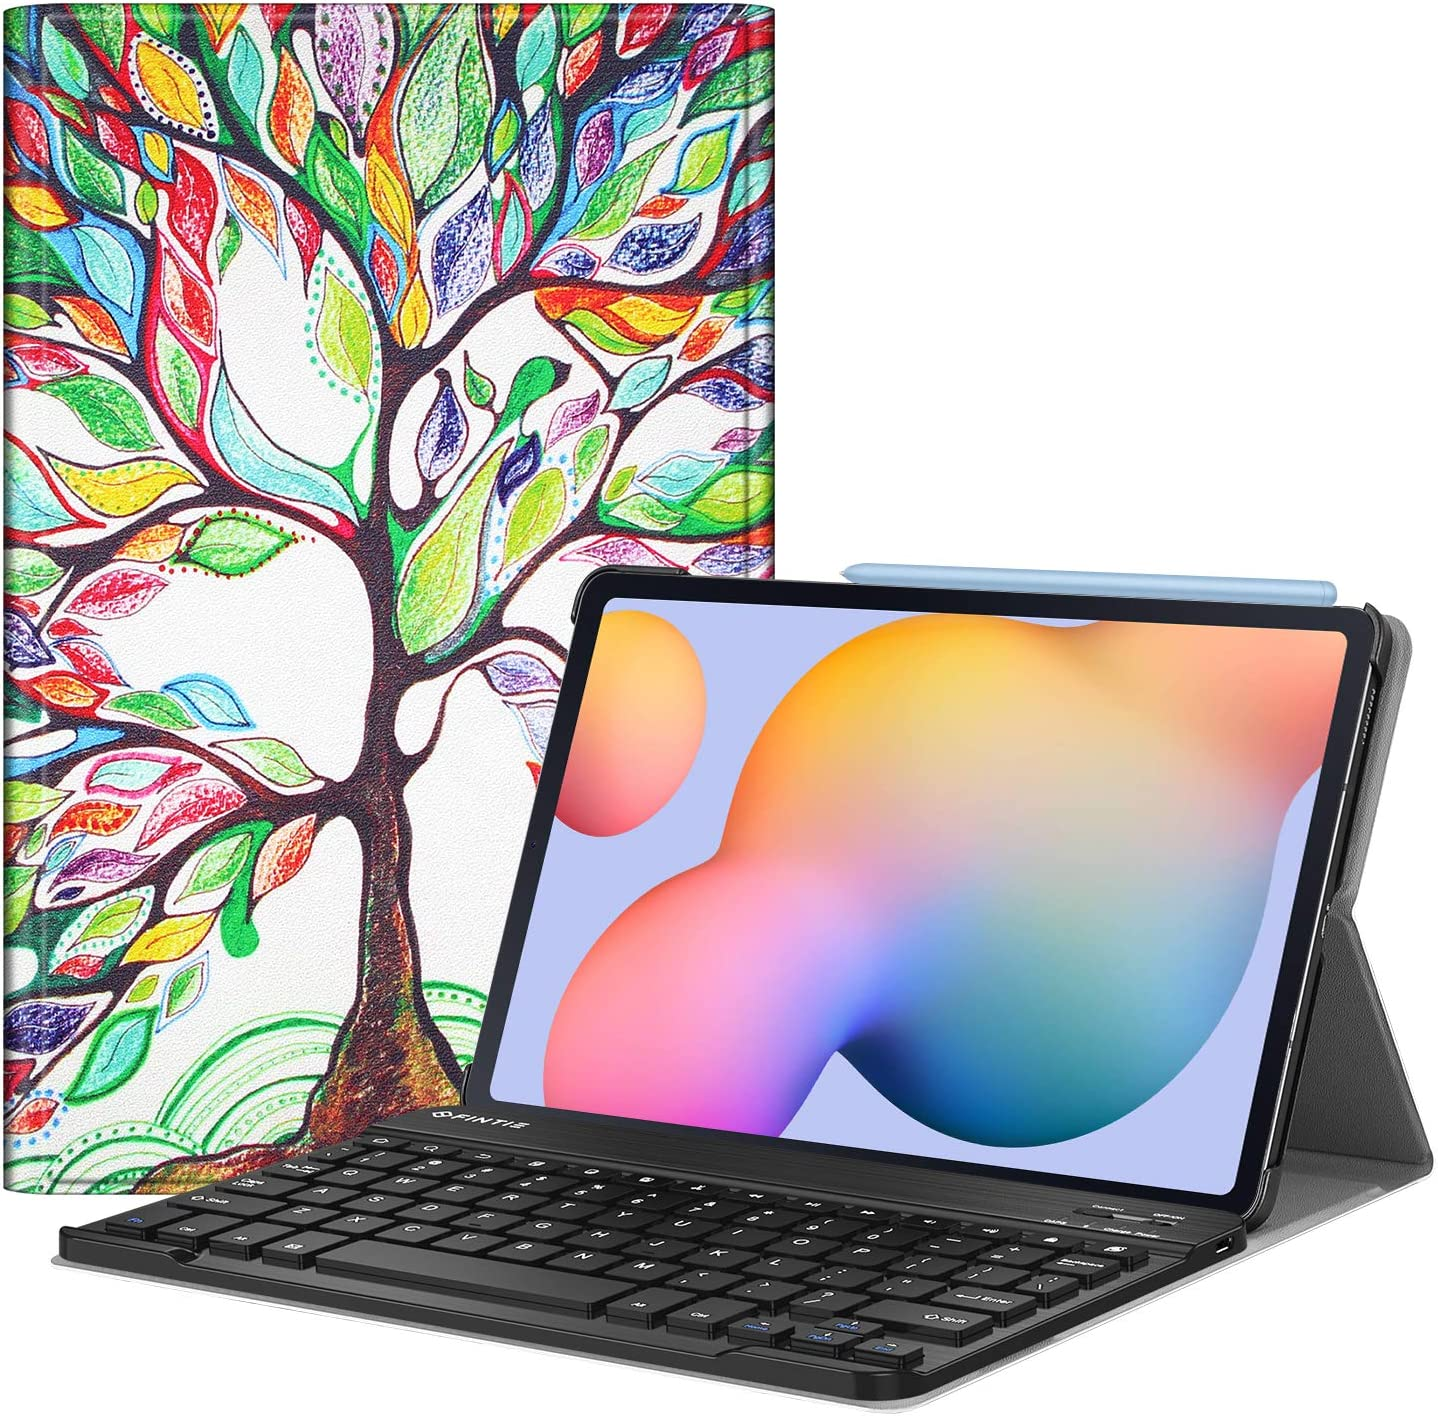 Fintie Keyboard Case for Samsung Galaxy Tab S6 Lite 10.4'' 2020 Model SM-P610 (Wi-Fi) SM-P615 (LTE), Slim Stand Cover with Secure S Pen Holder Detachable Wireless Bluetooth Keyboard, Love Tree